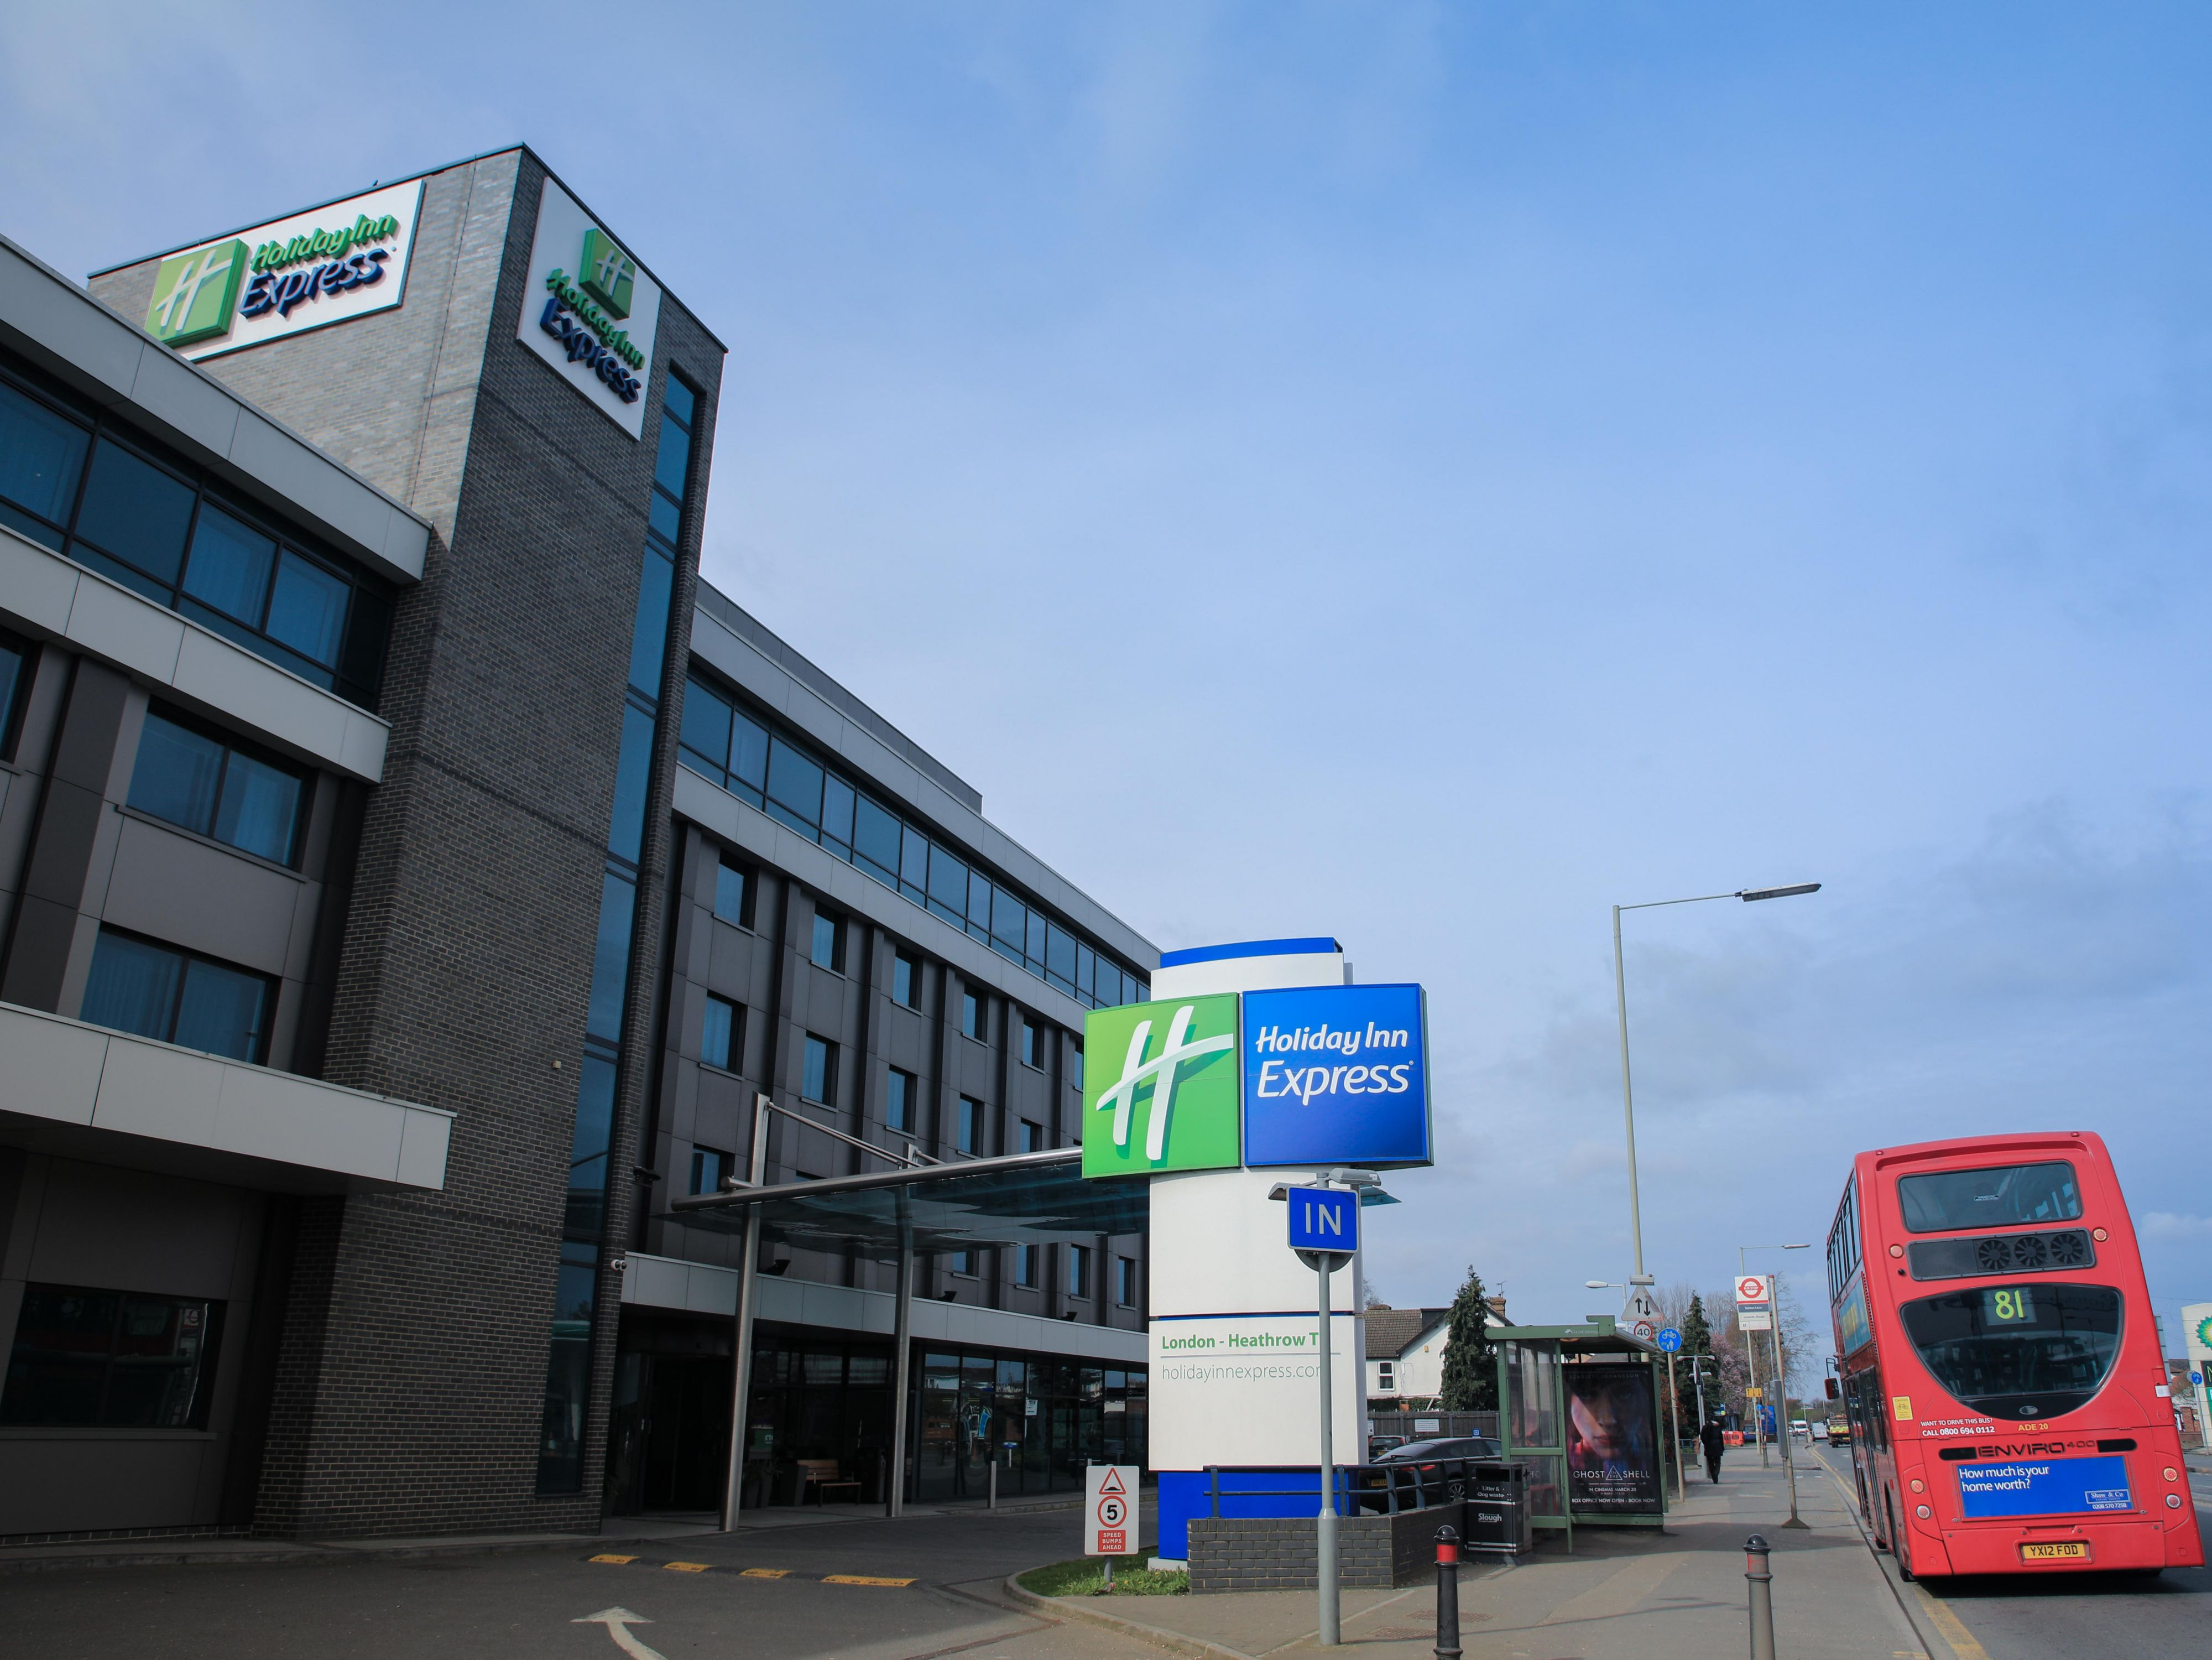 Airport Hotel Holiday Inn Express London Heathrow T5